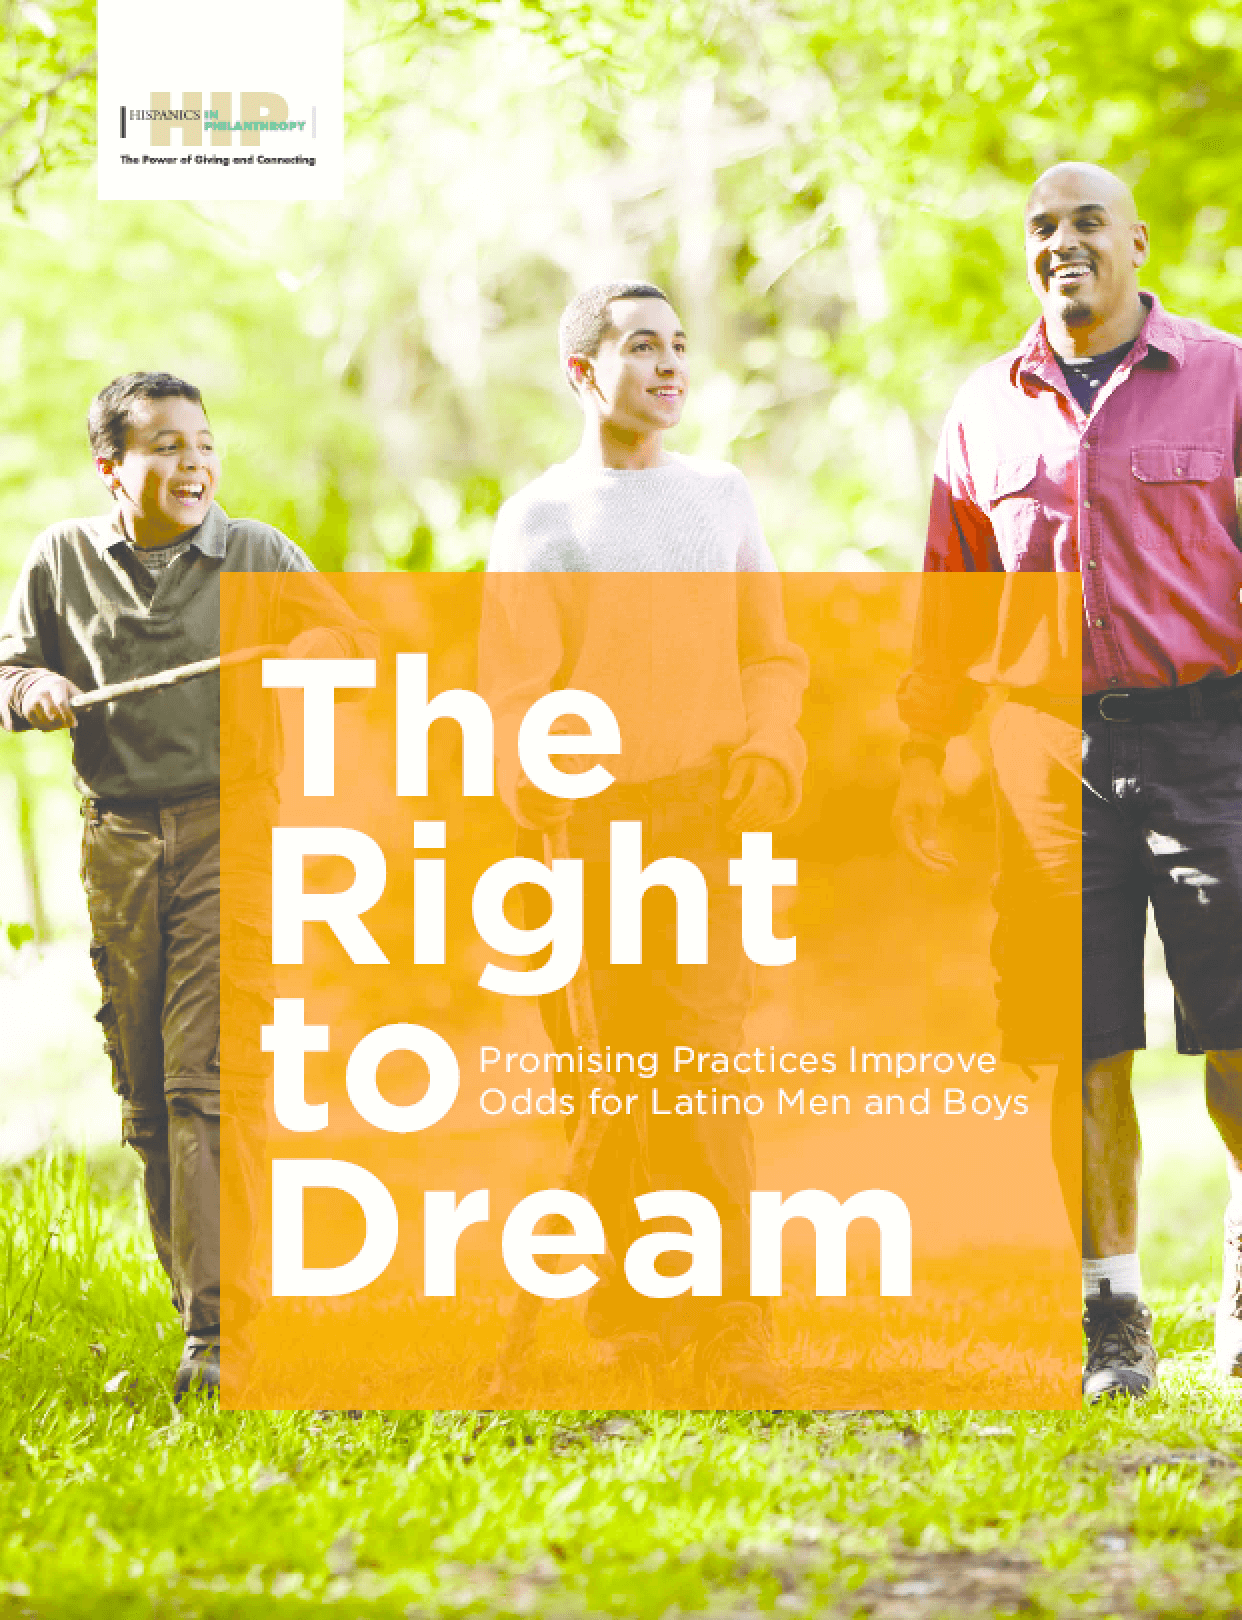 The Right to Dream: Promising Practices Improve Odds for Latino Men and Boys